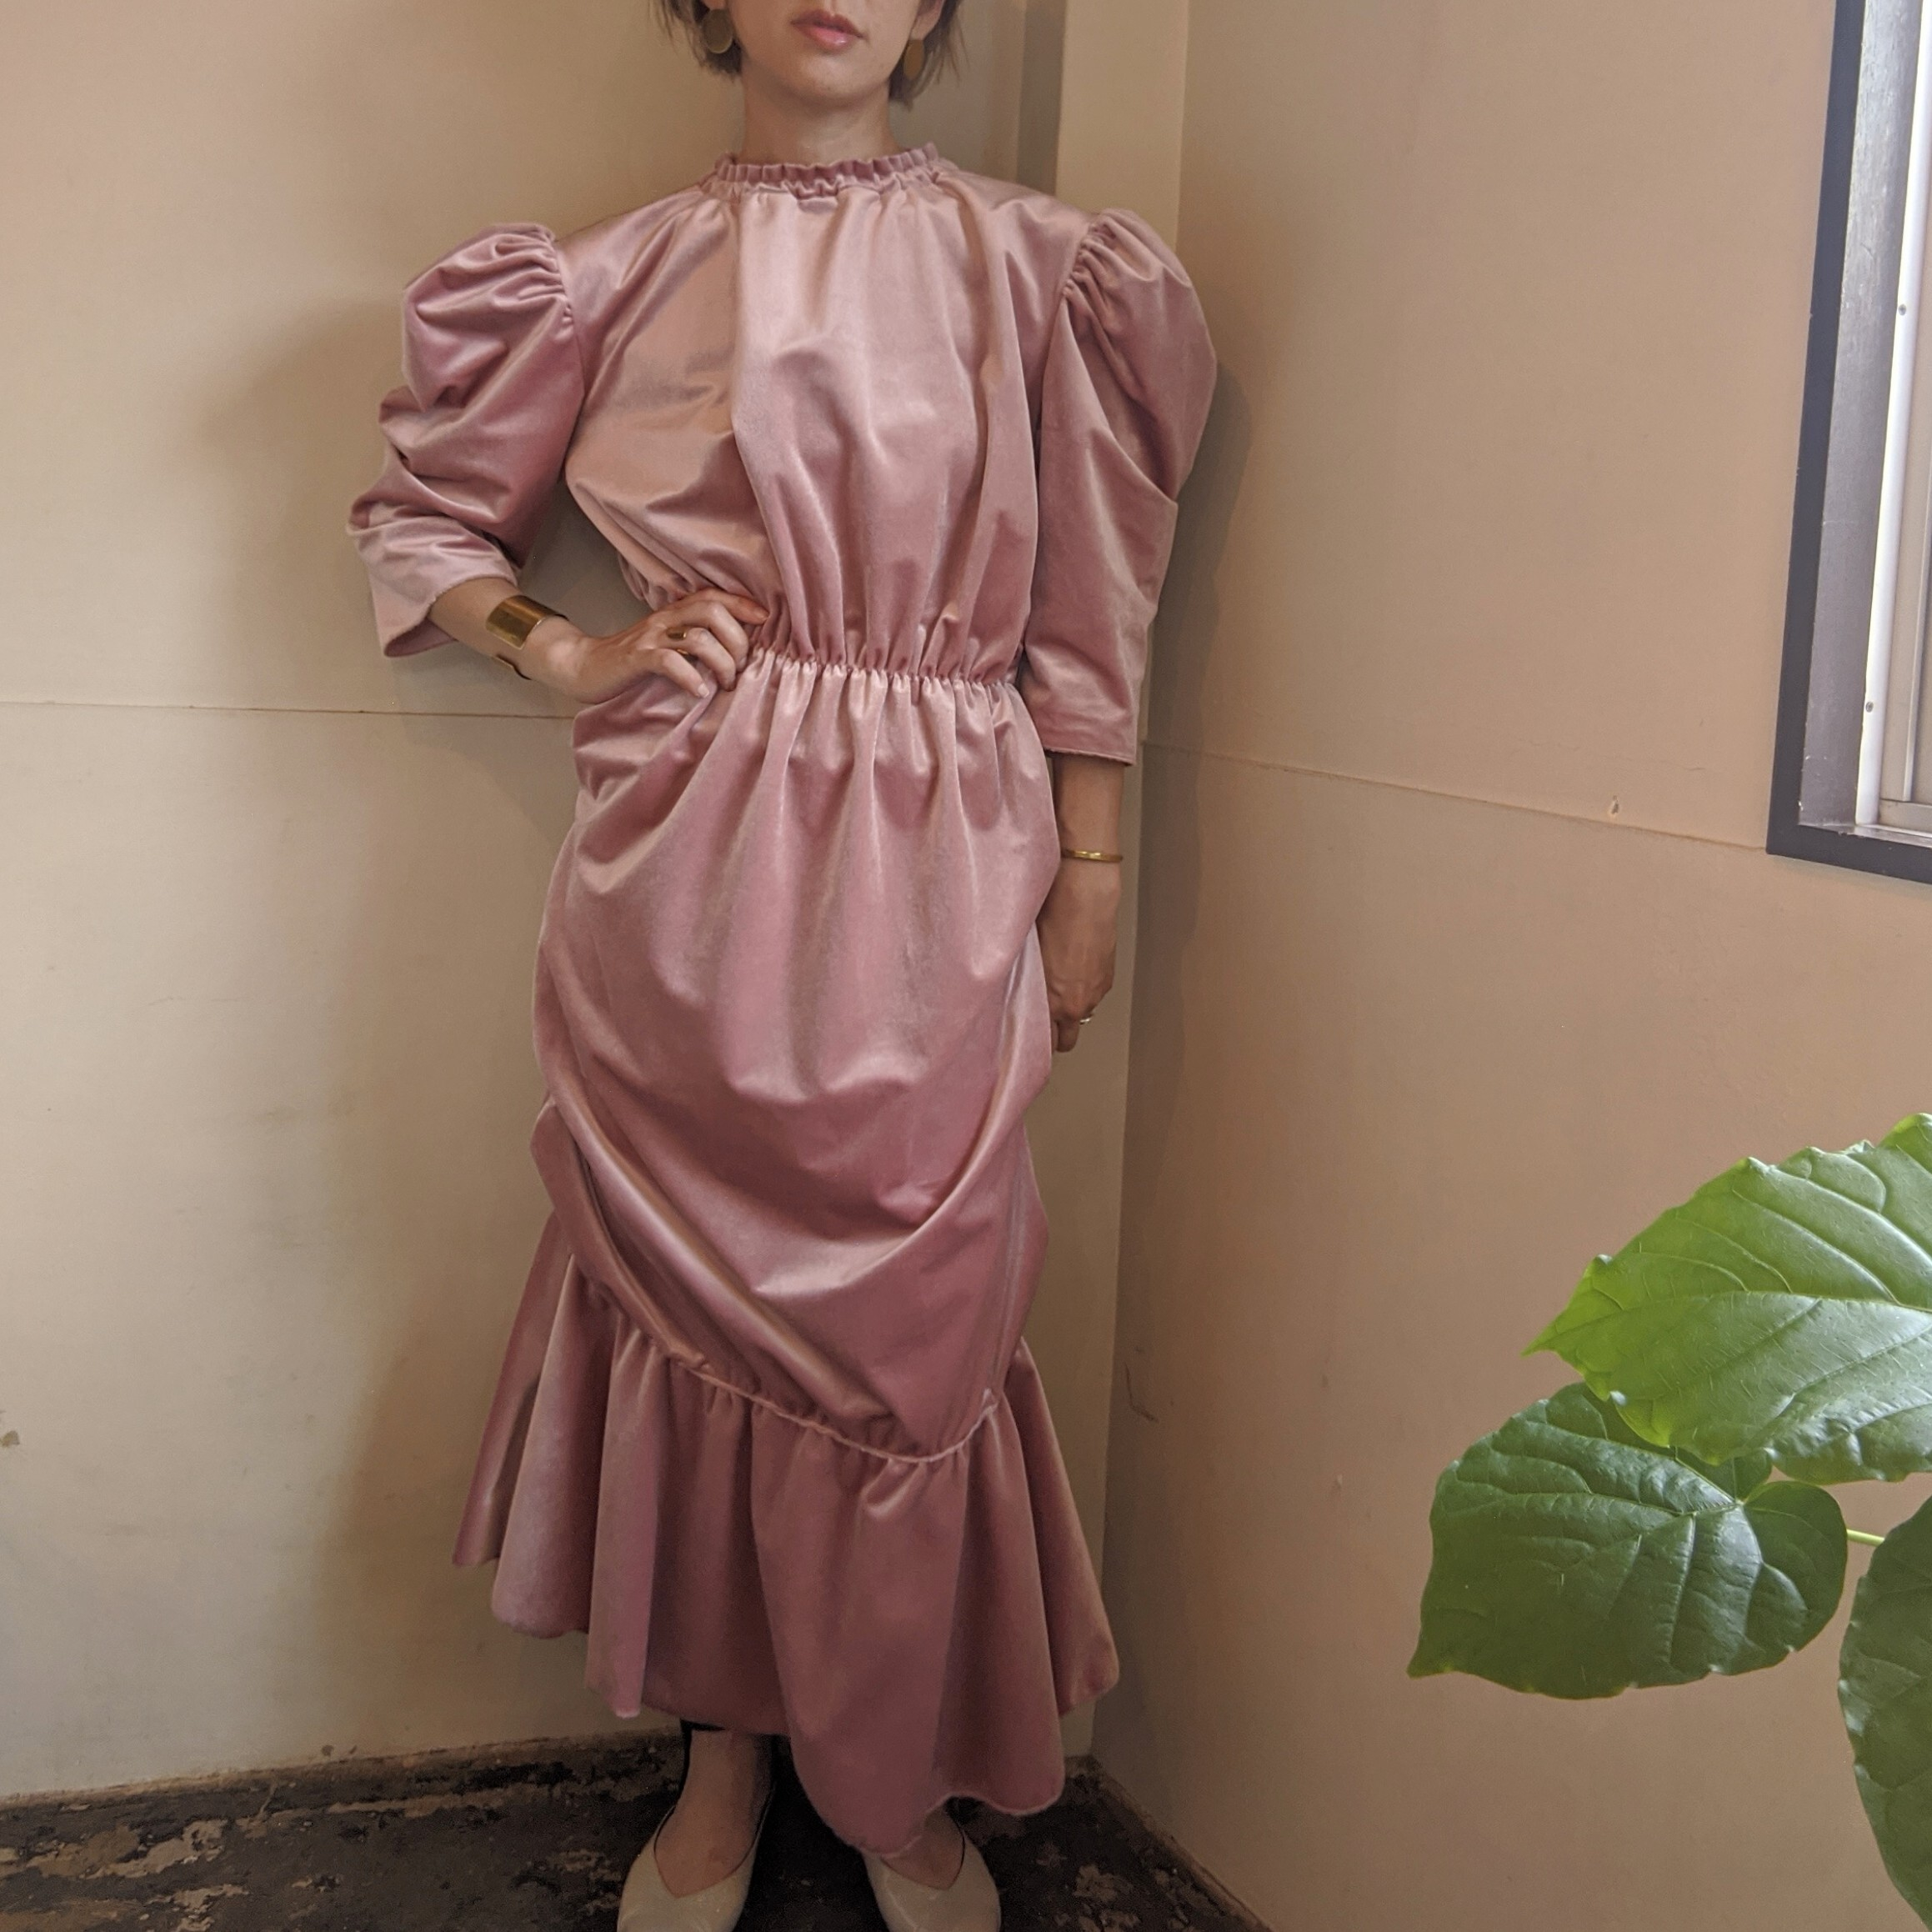 【 HOUGA 】ホウガ 2020AW blossom dress / pink / partydress /秋冬